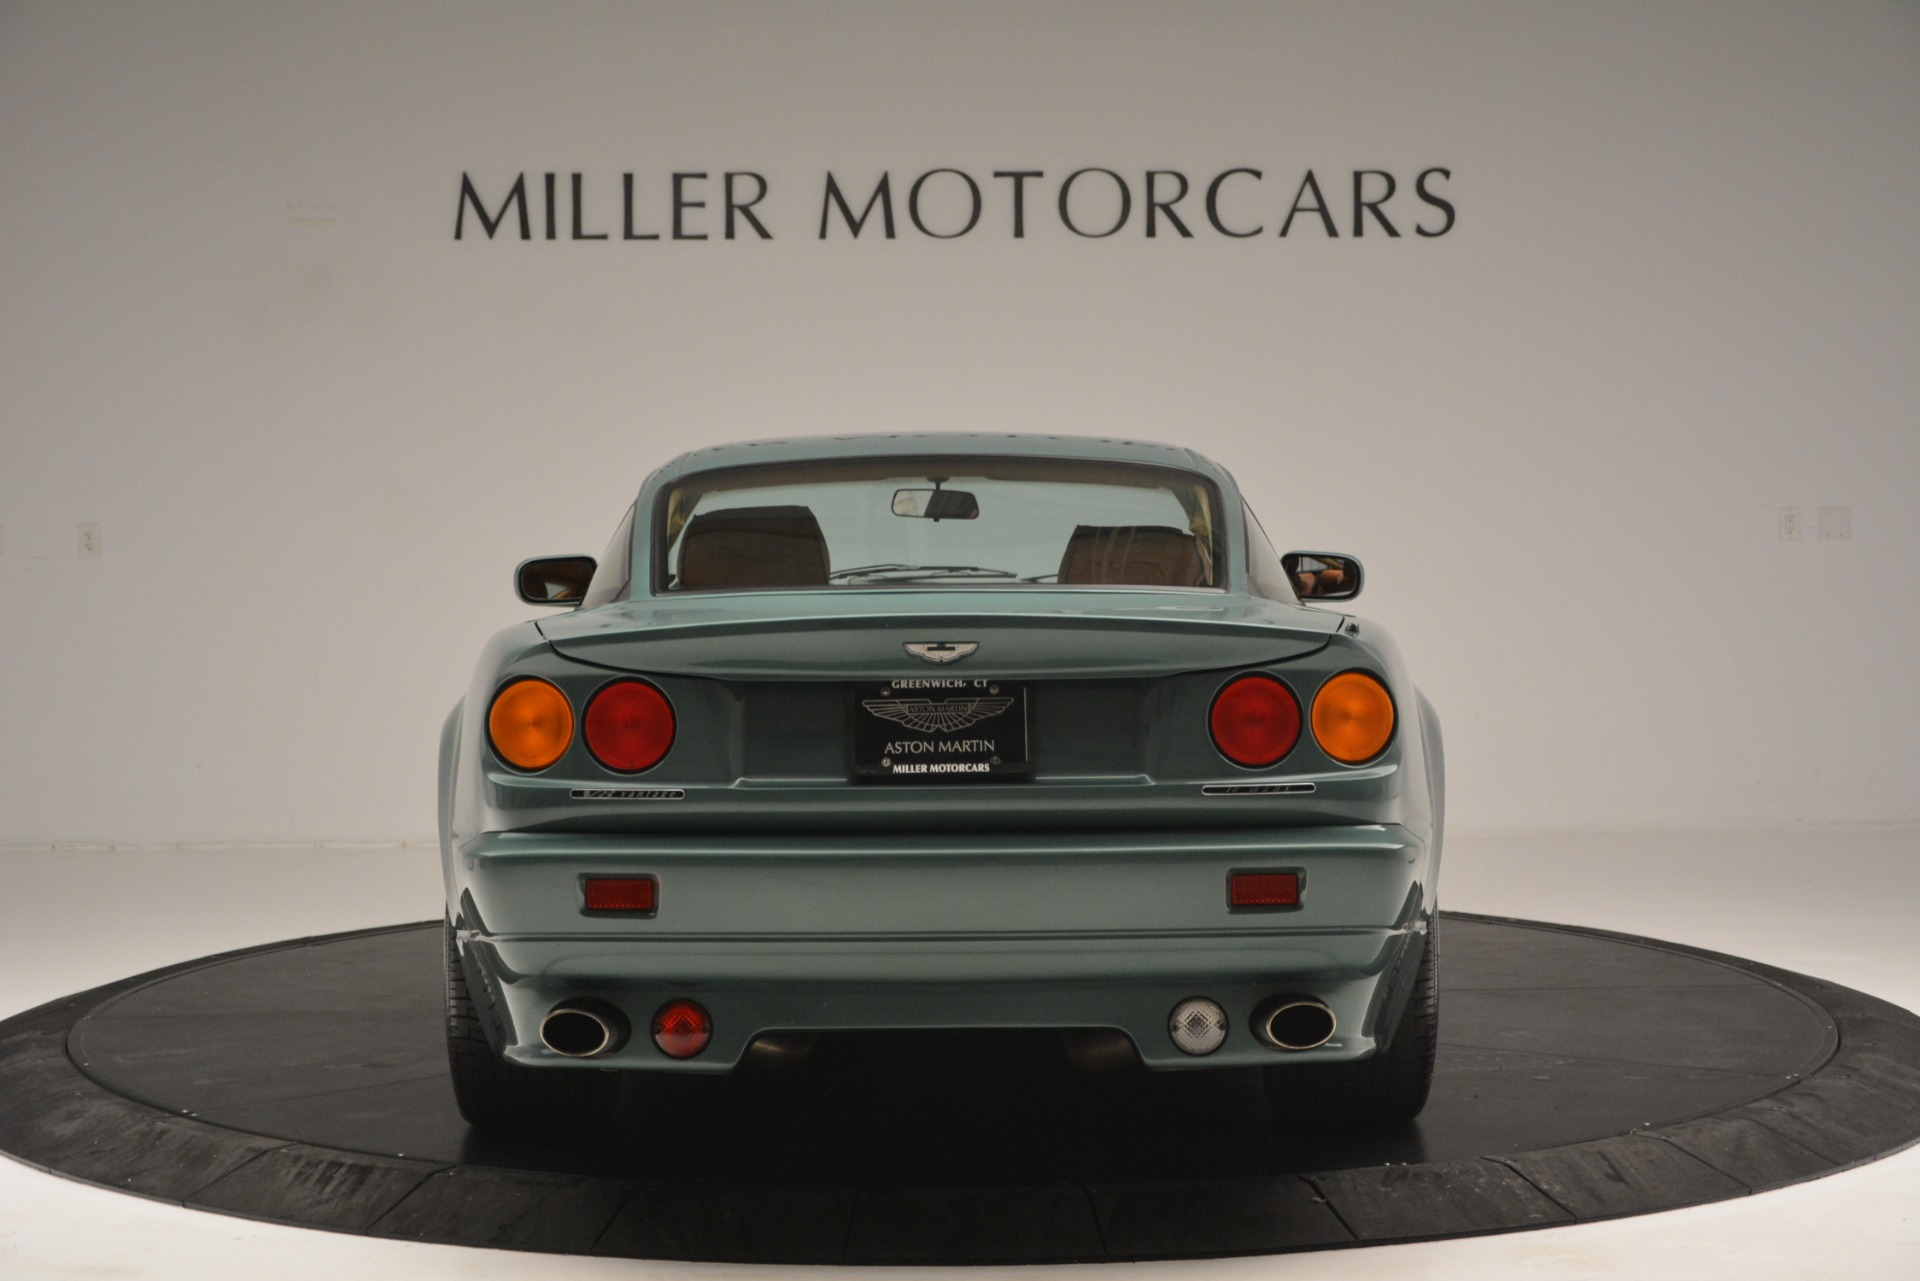 Used 1999 Aston Martin V8 Vantage Le Mans V600 Coupe For Sale In Westport, CT 2789_p7